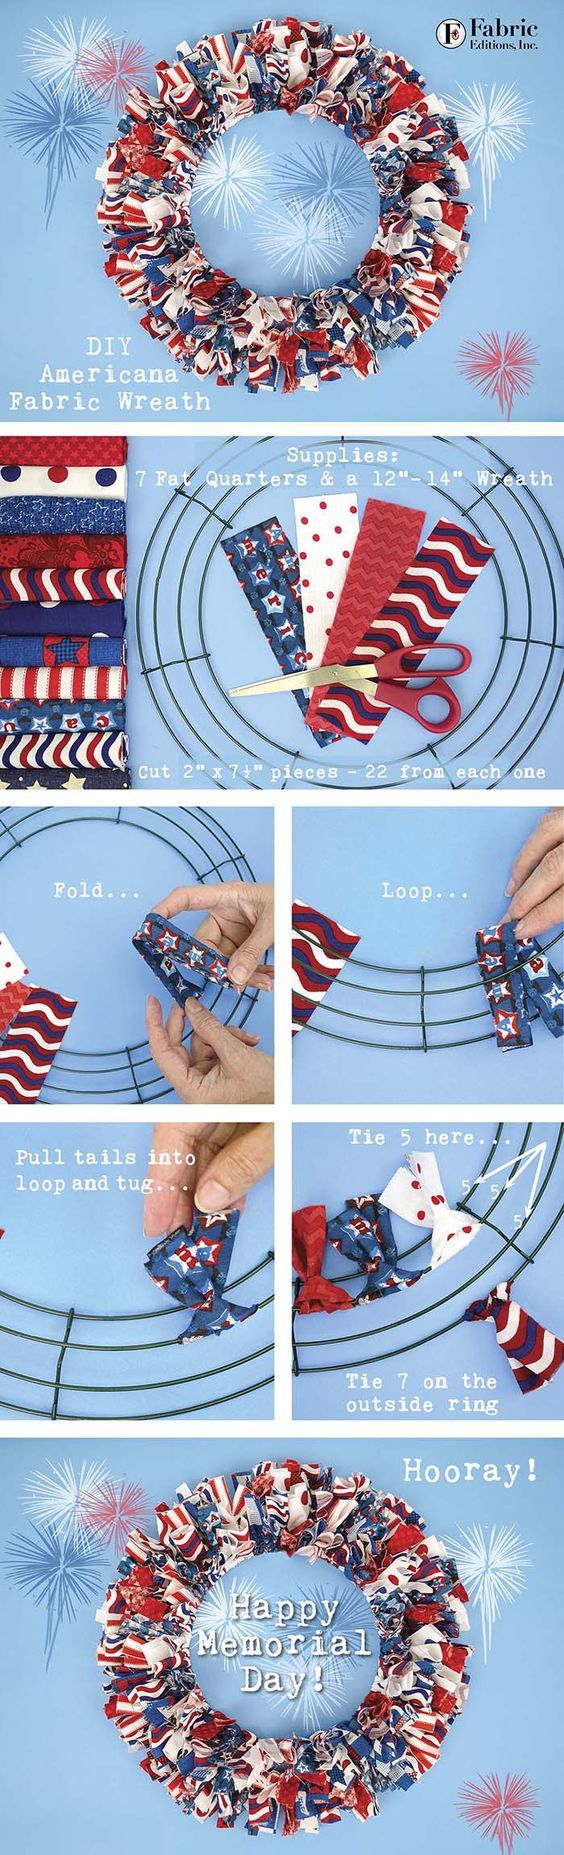 20 kreative DIY Kranz Ideen & Tutorials